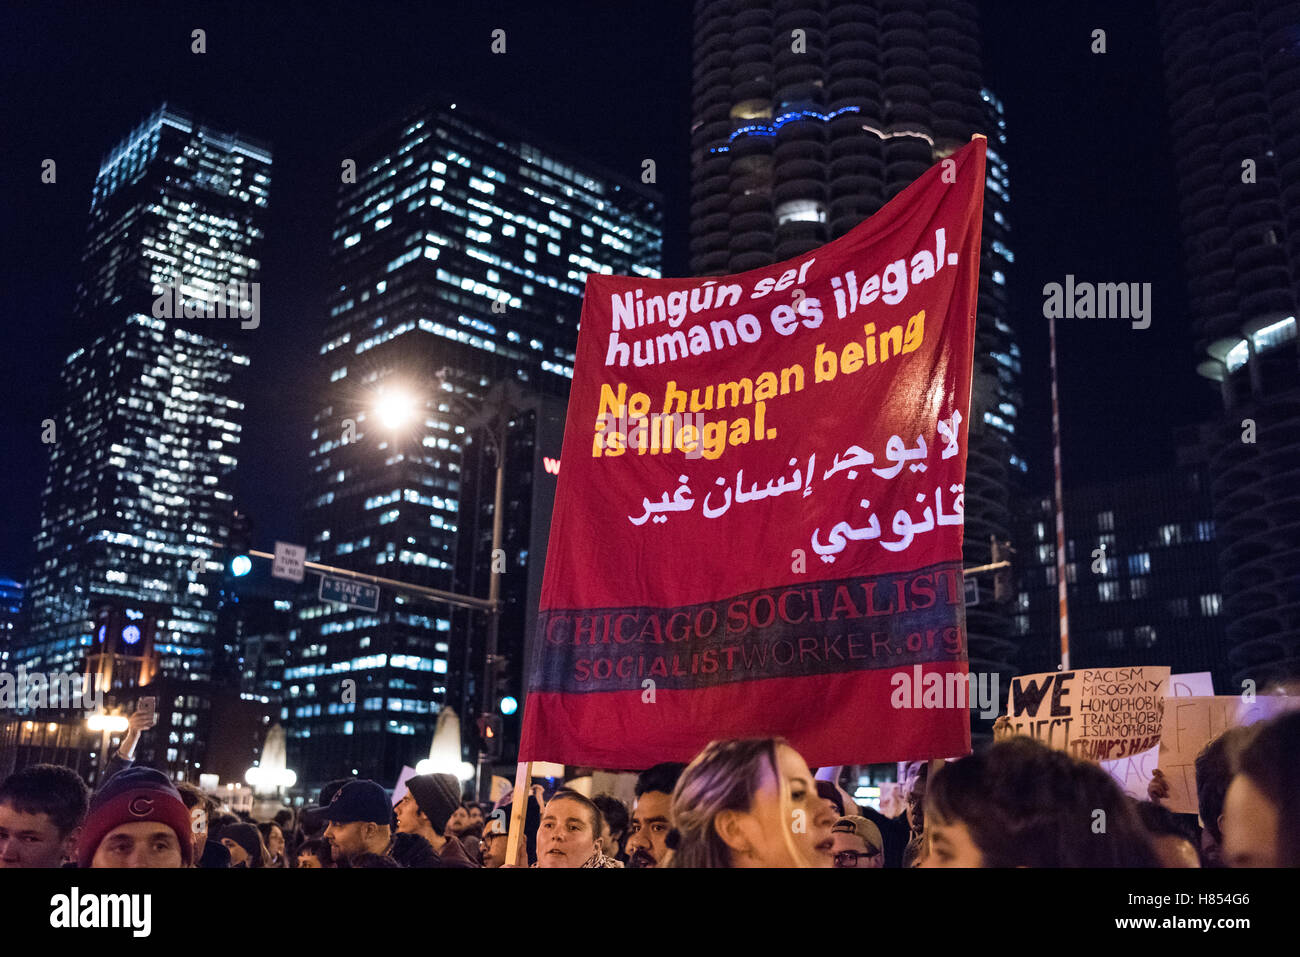 Chicago, Illinois, USA. 9th November, 2016. Chicago Socialists hold a sign reading 'No Human Being is illegal' - Stock Image